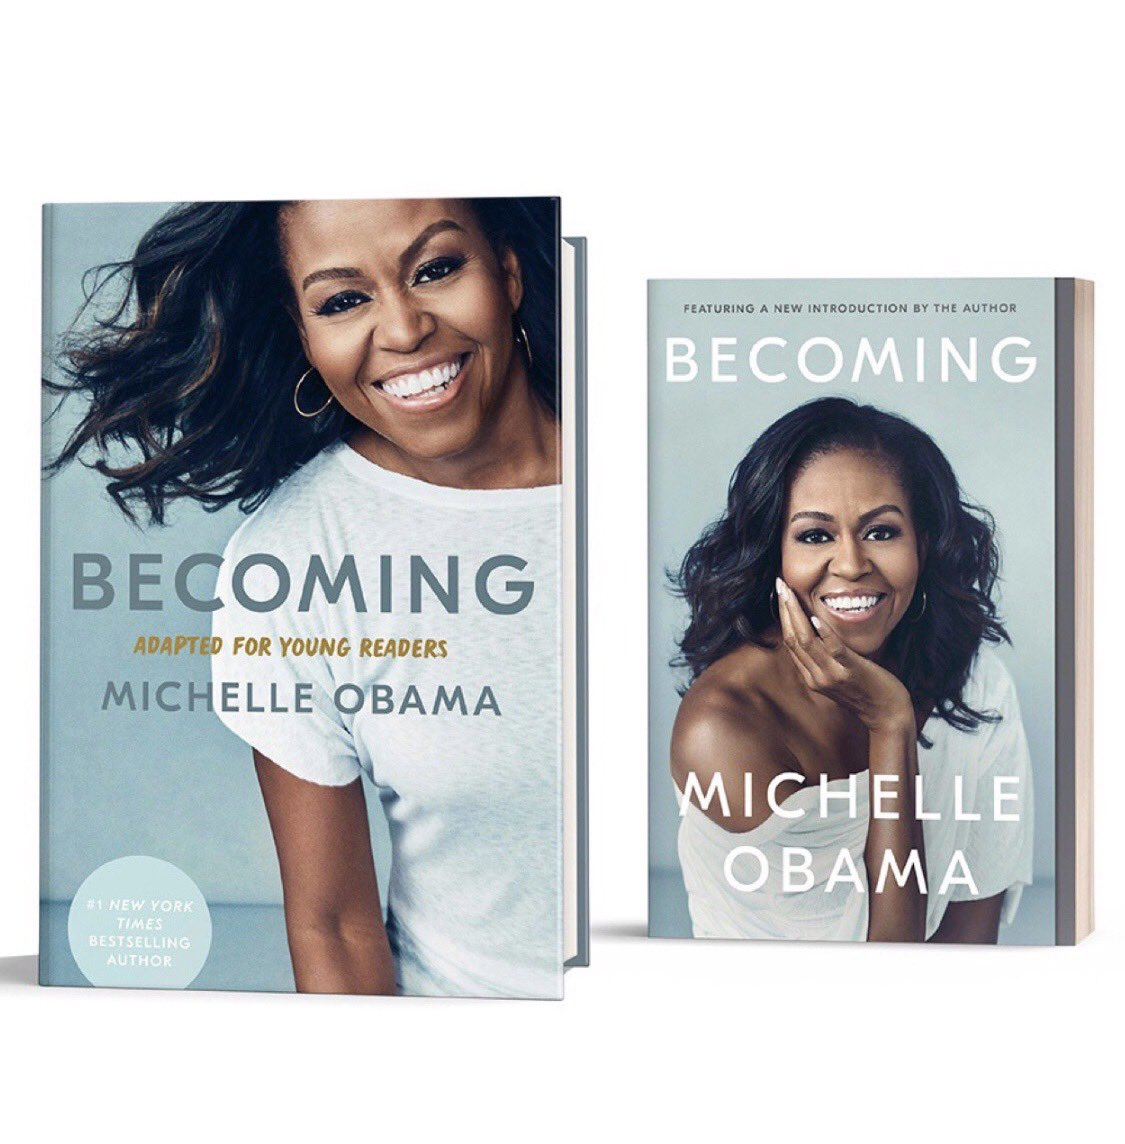 Young people & many others are in for a huge treat - with the arrival of the young readers' and paperback editions of @MichelleObama's Becoming! When I first read it, I laughed, cried and felt like she'd taken me on her journey. I hope you'll share your story using #Iambecoming